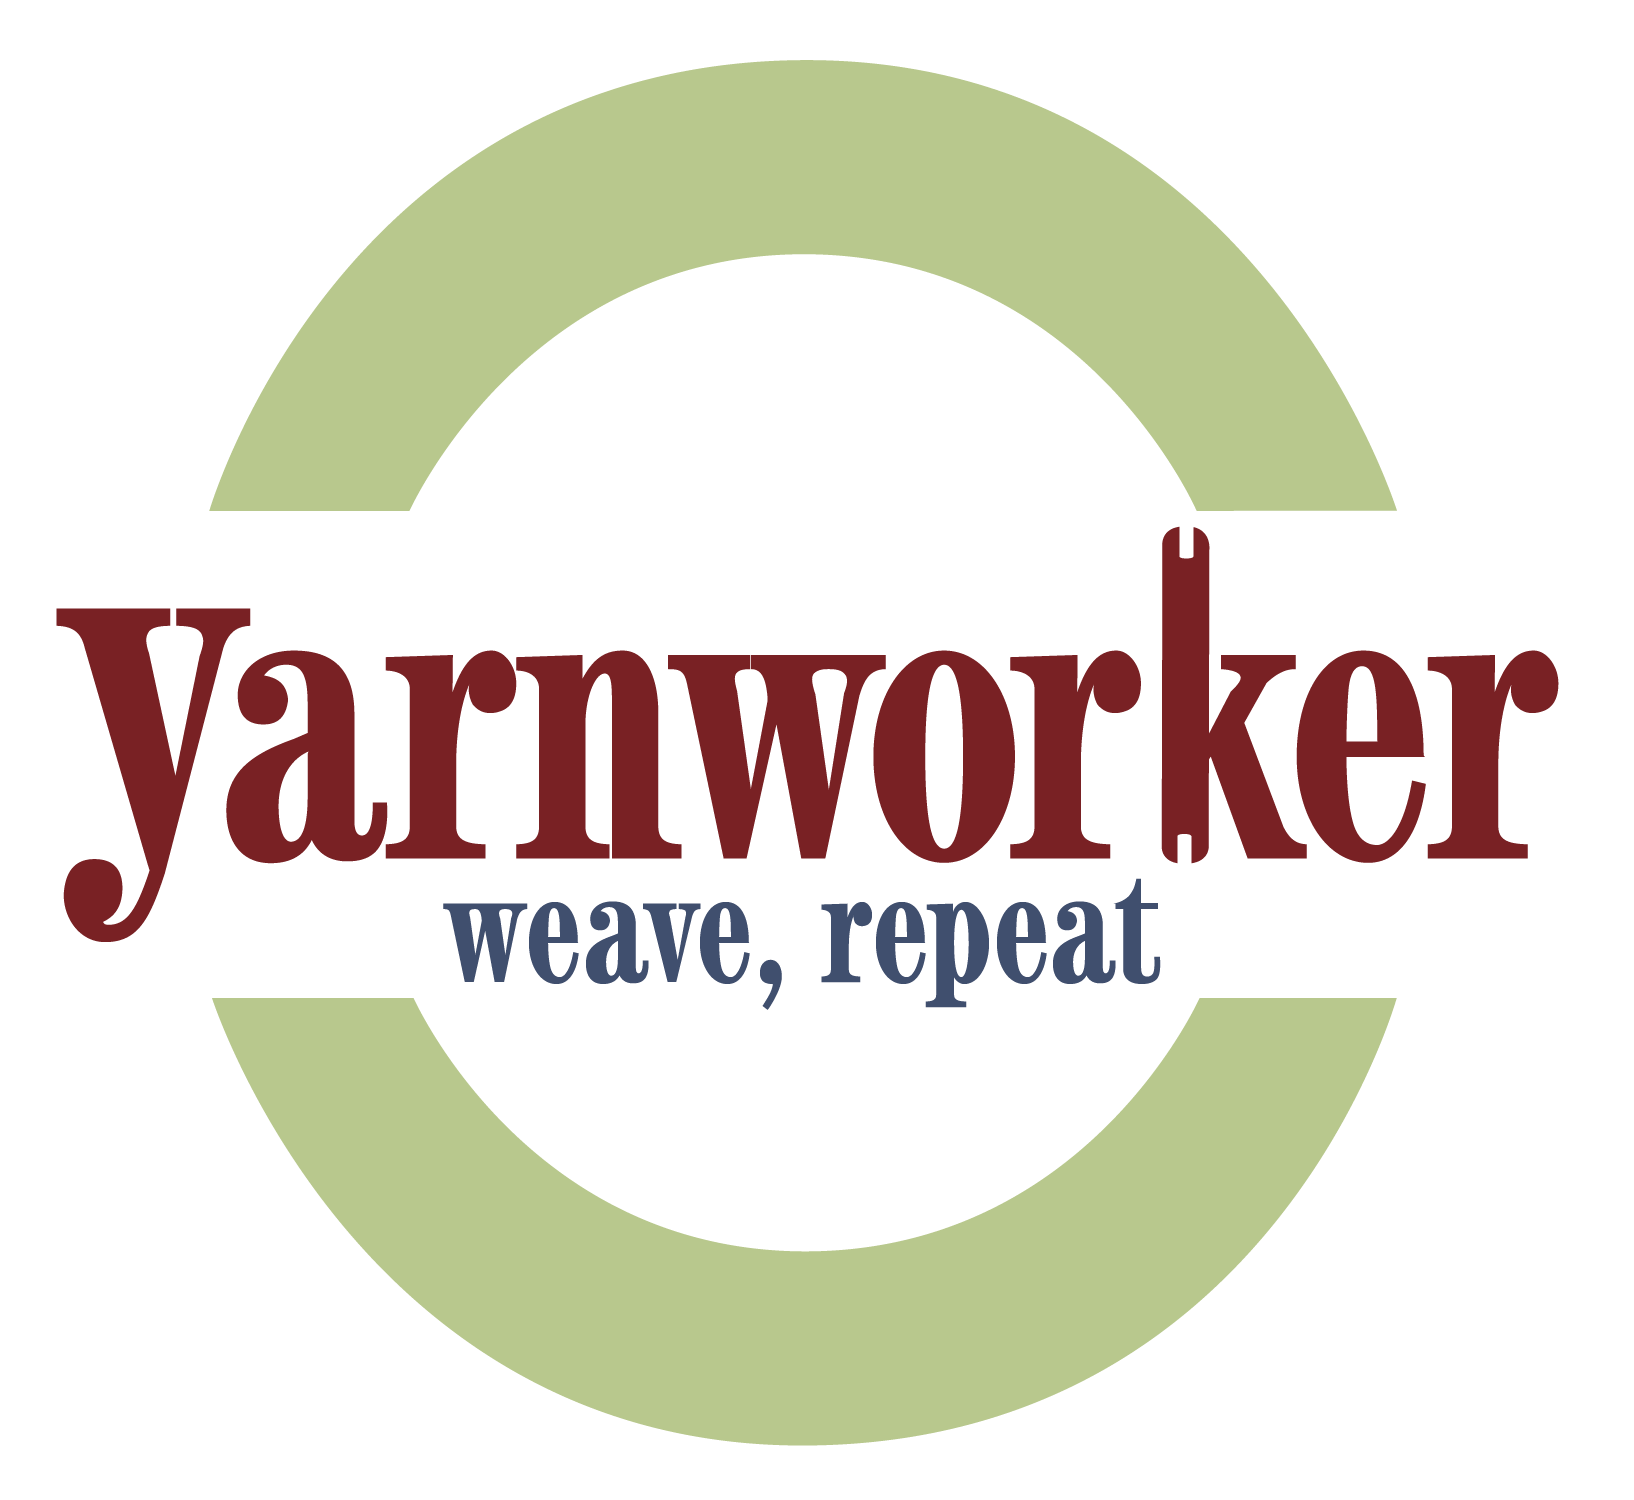 Yarnworker logo: a green half circle above and below with the word Yarnworker with